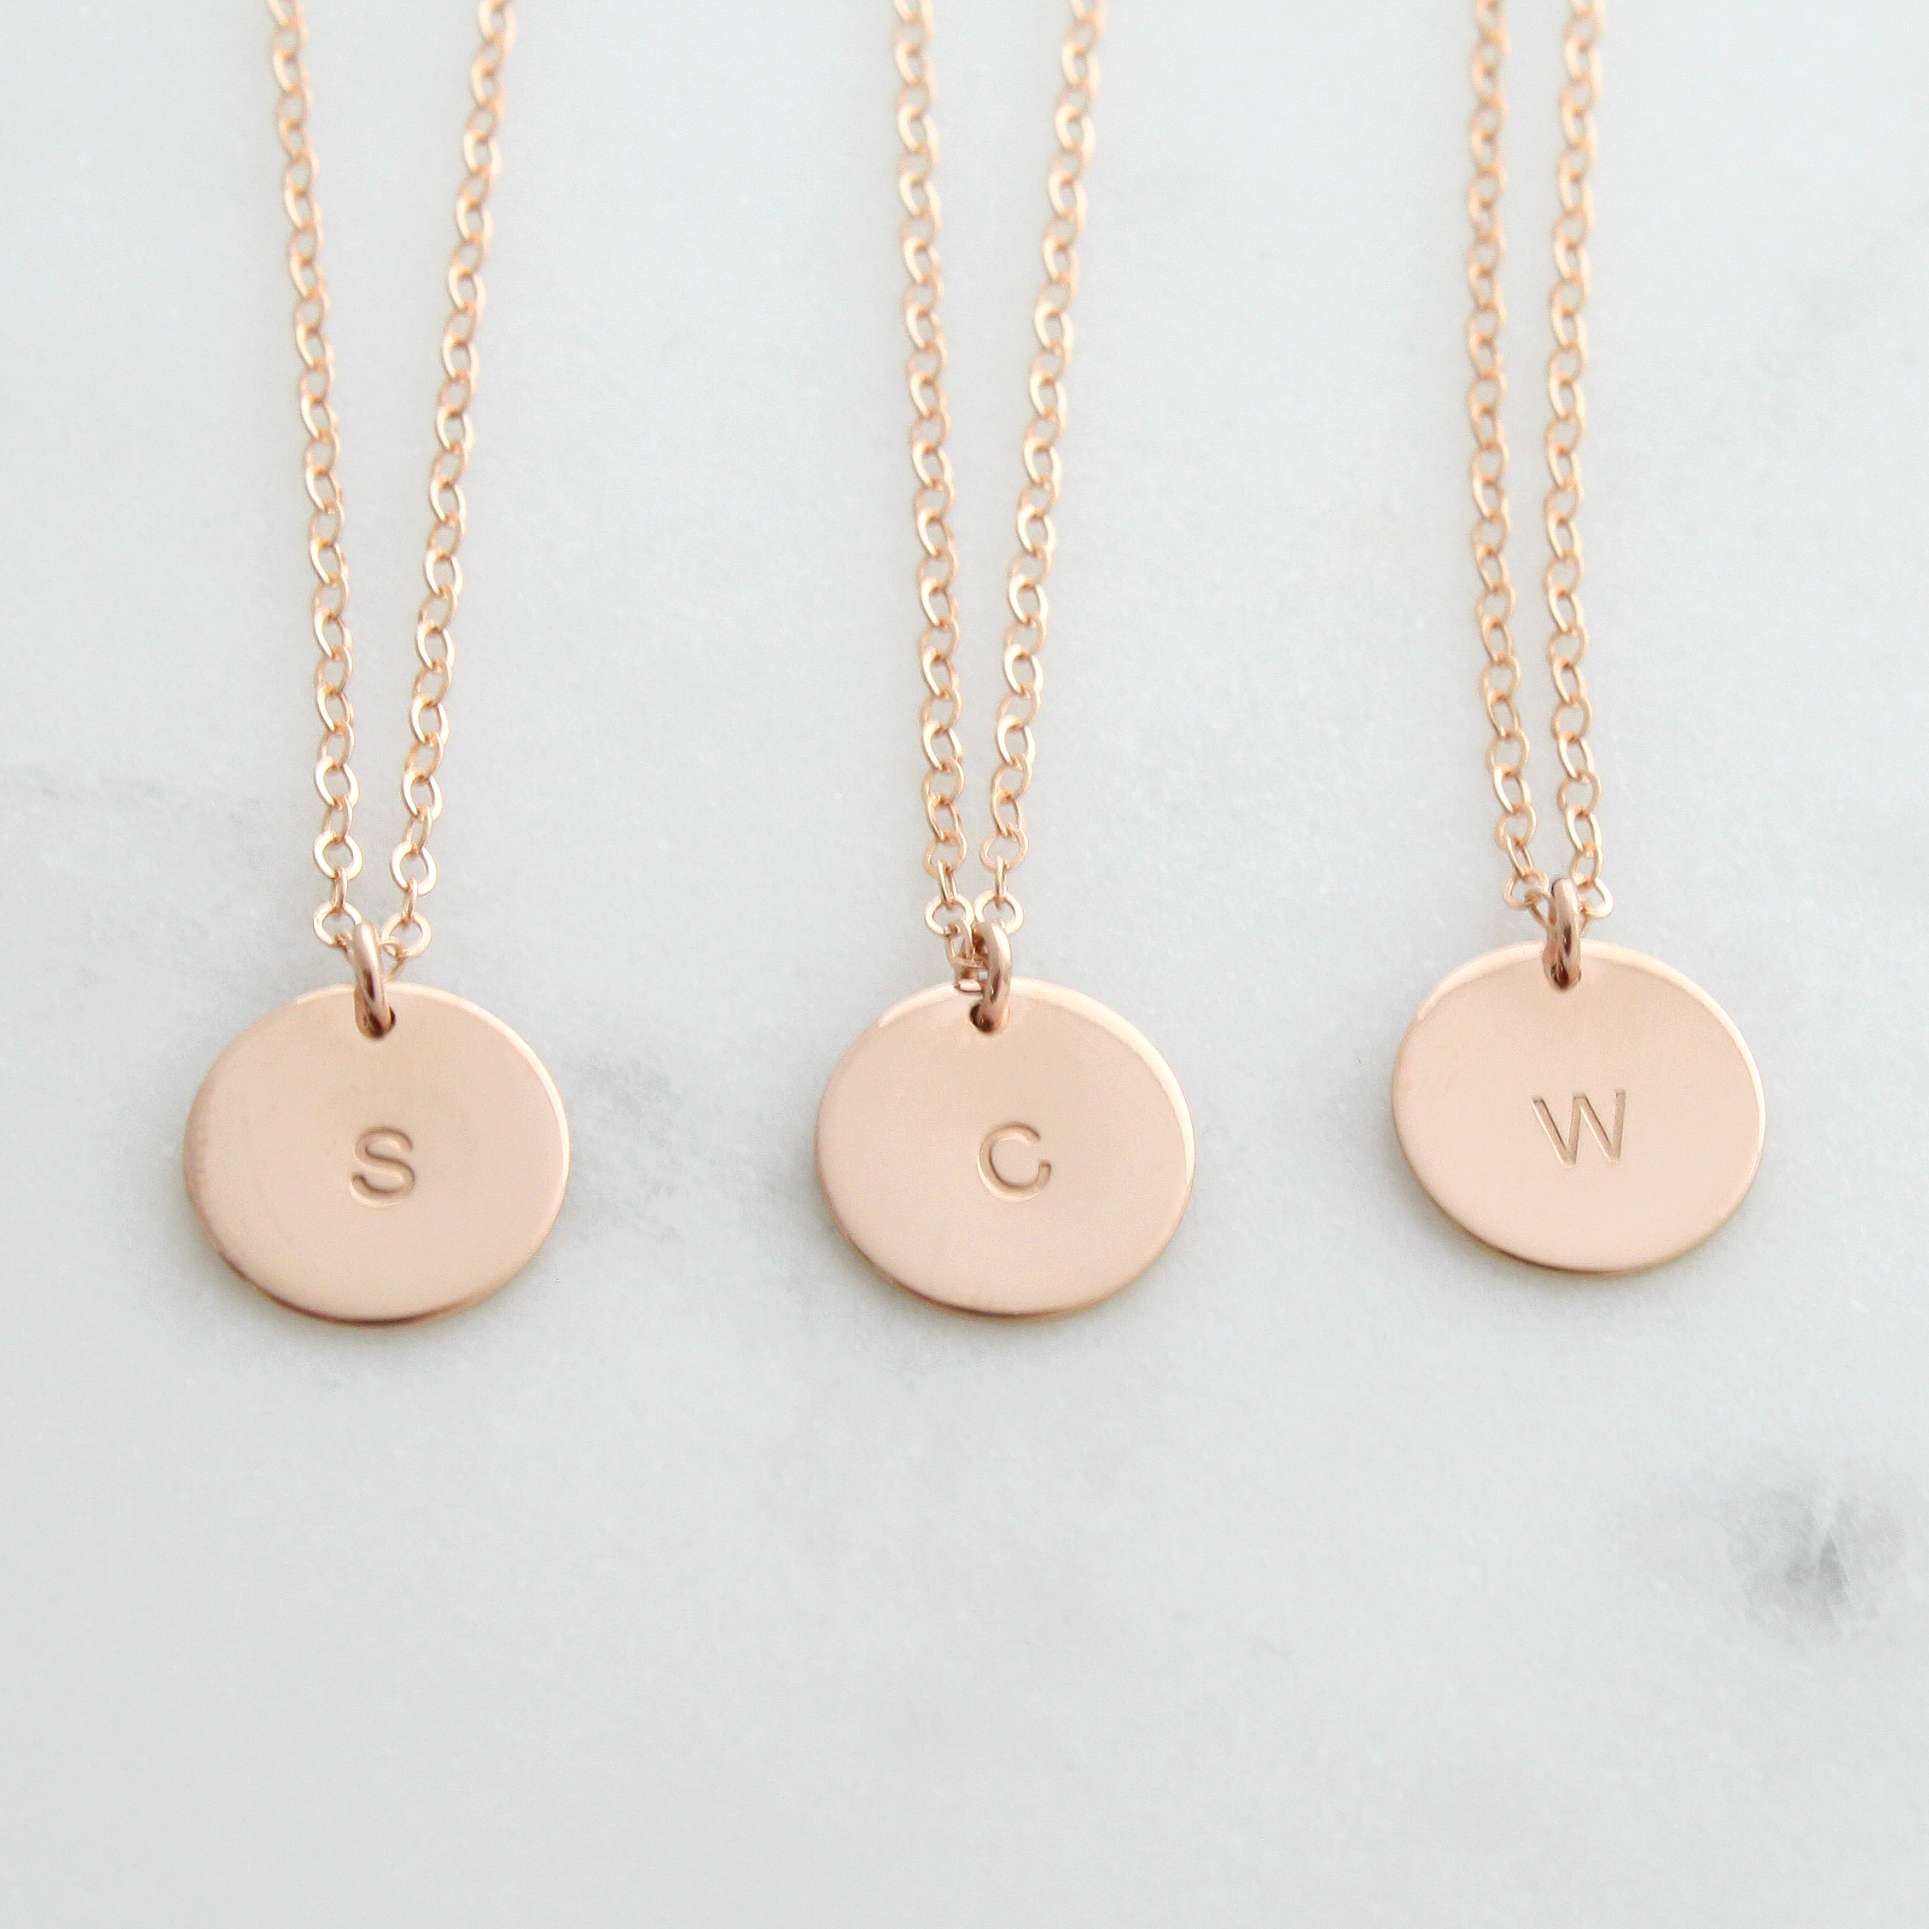 necklace copy initial jewelry sophie ratner products engraved pendant diamond